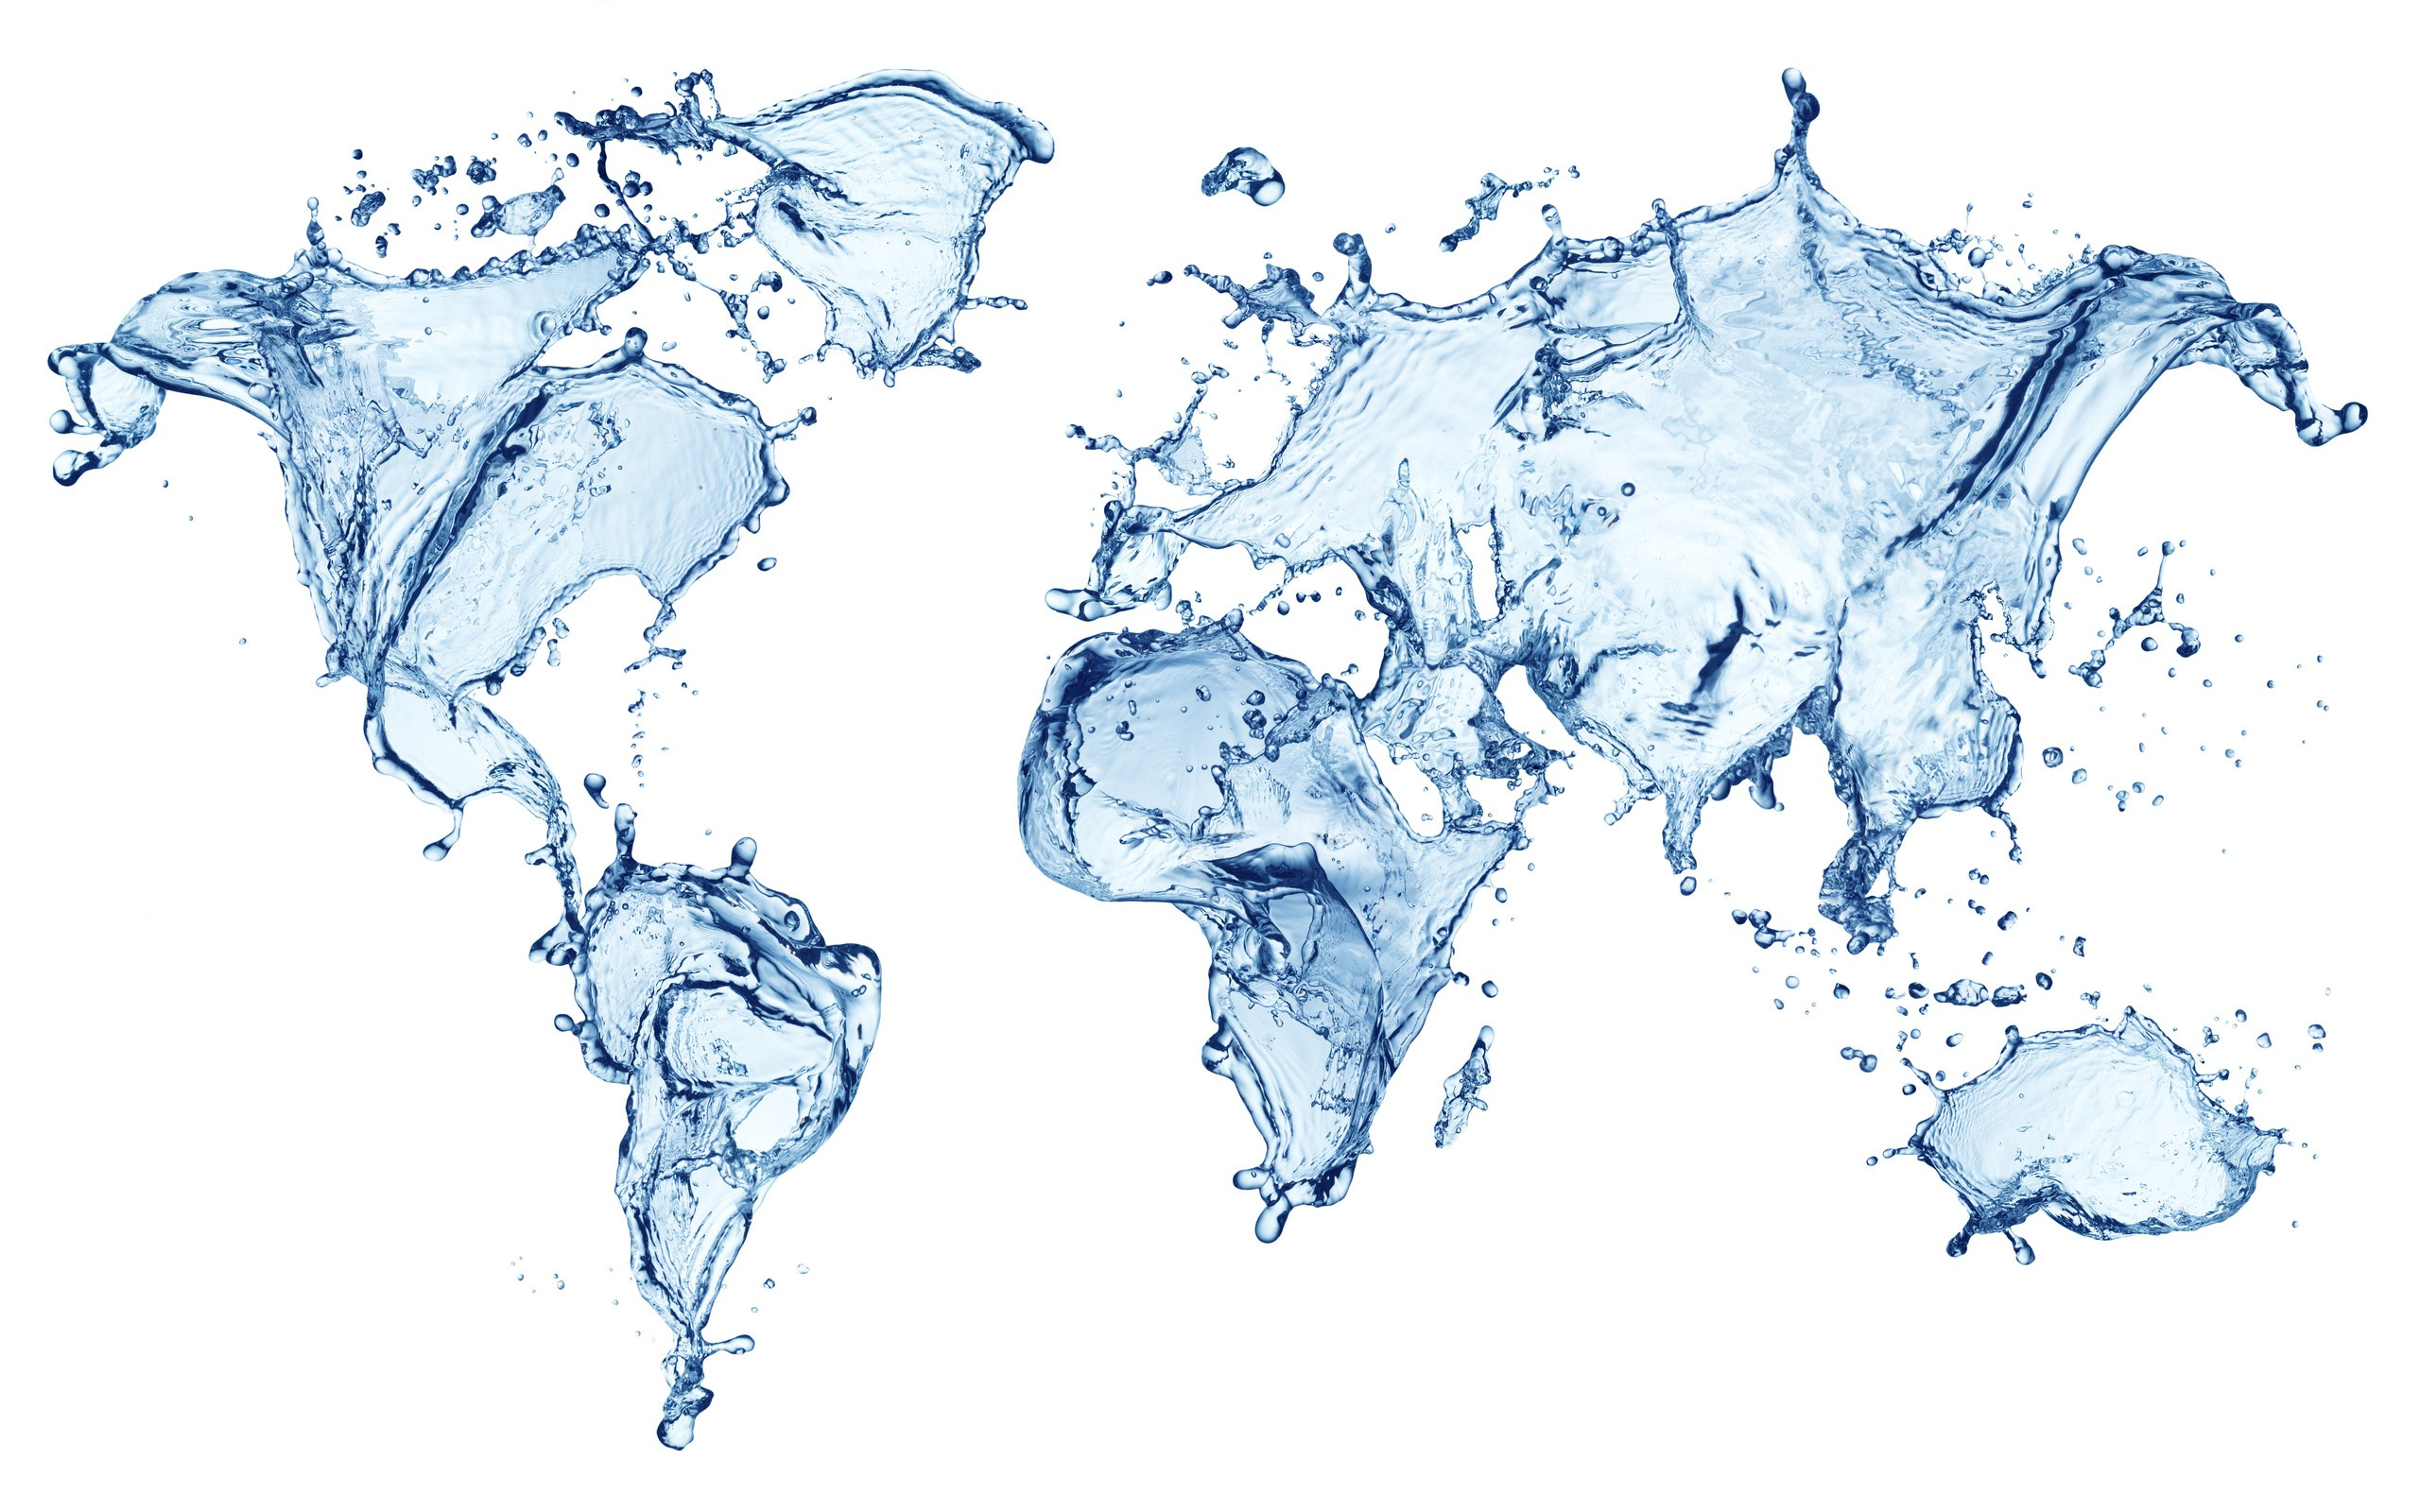 Water abstract maps world map wallpaper | 2560x1600 | 191339